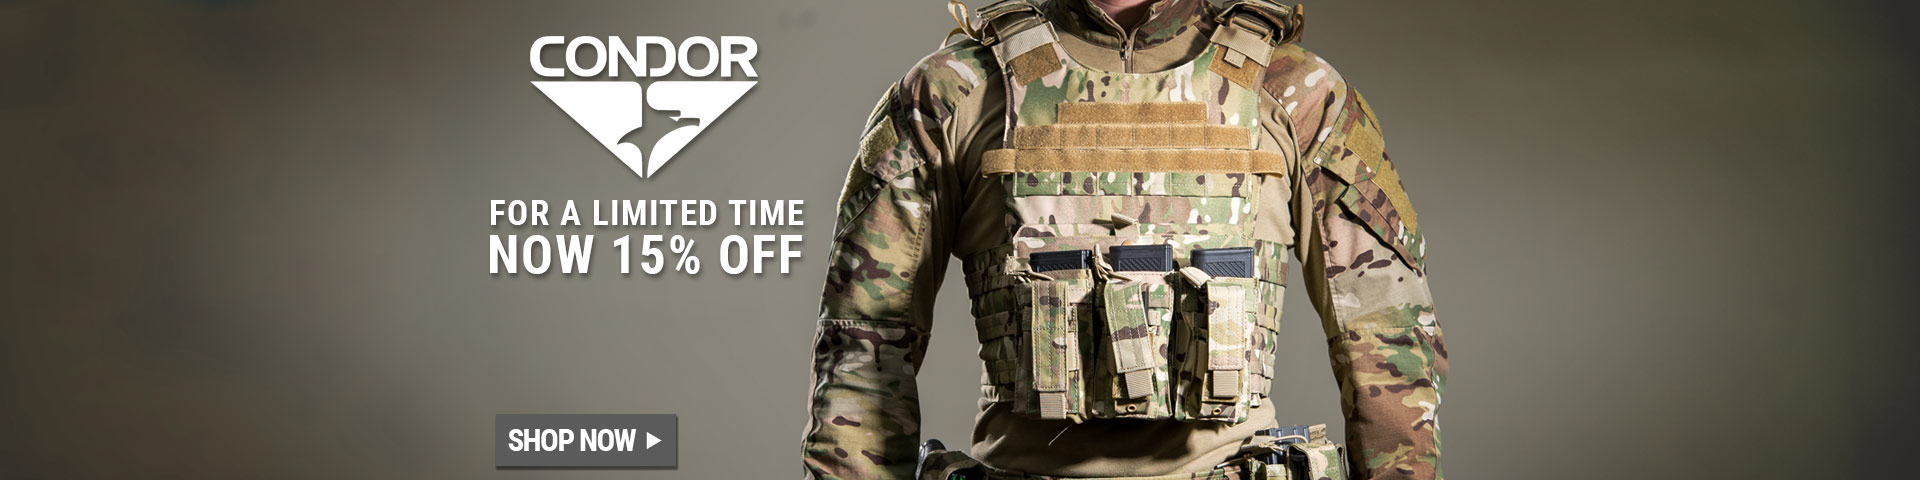 bf07467d52737 Evike.com - The Ultimate Airsoft Retailer   Distributor - Airsoft Guns